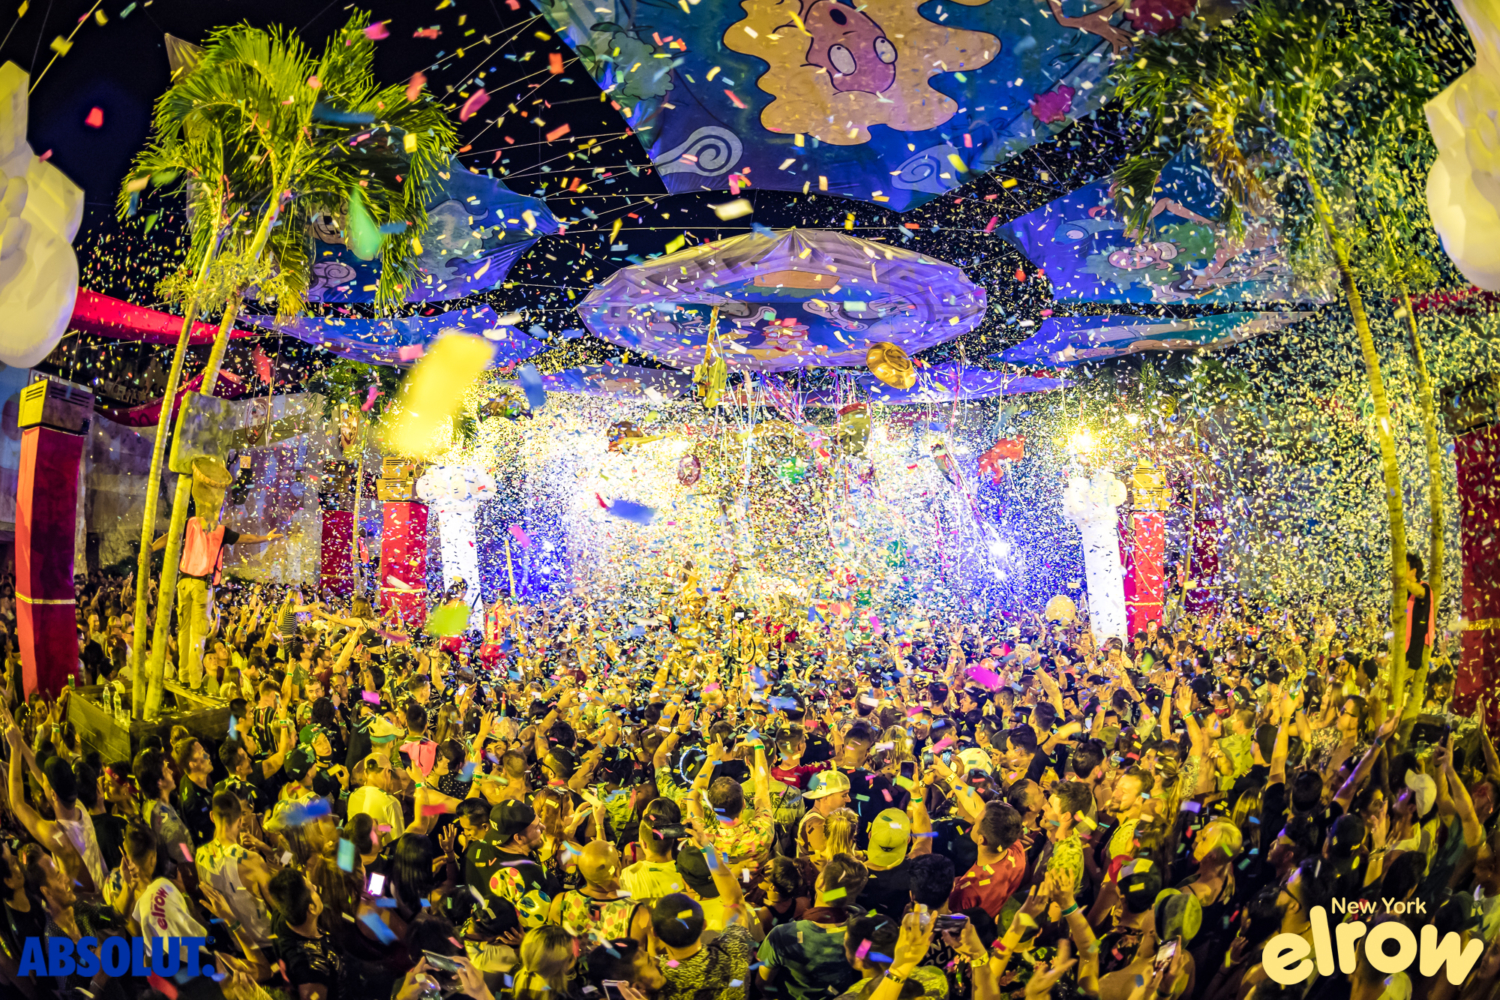 Making magic happen at Elrow Open Air – photos by aLIVE coverageELROW2018 0729 020145 0190 ALIVECOVERAGE